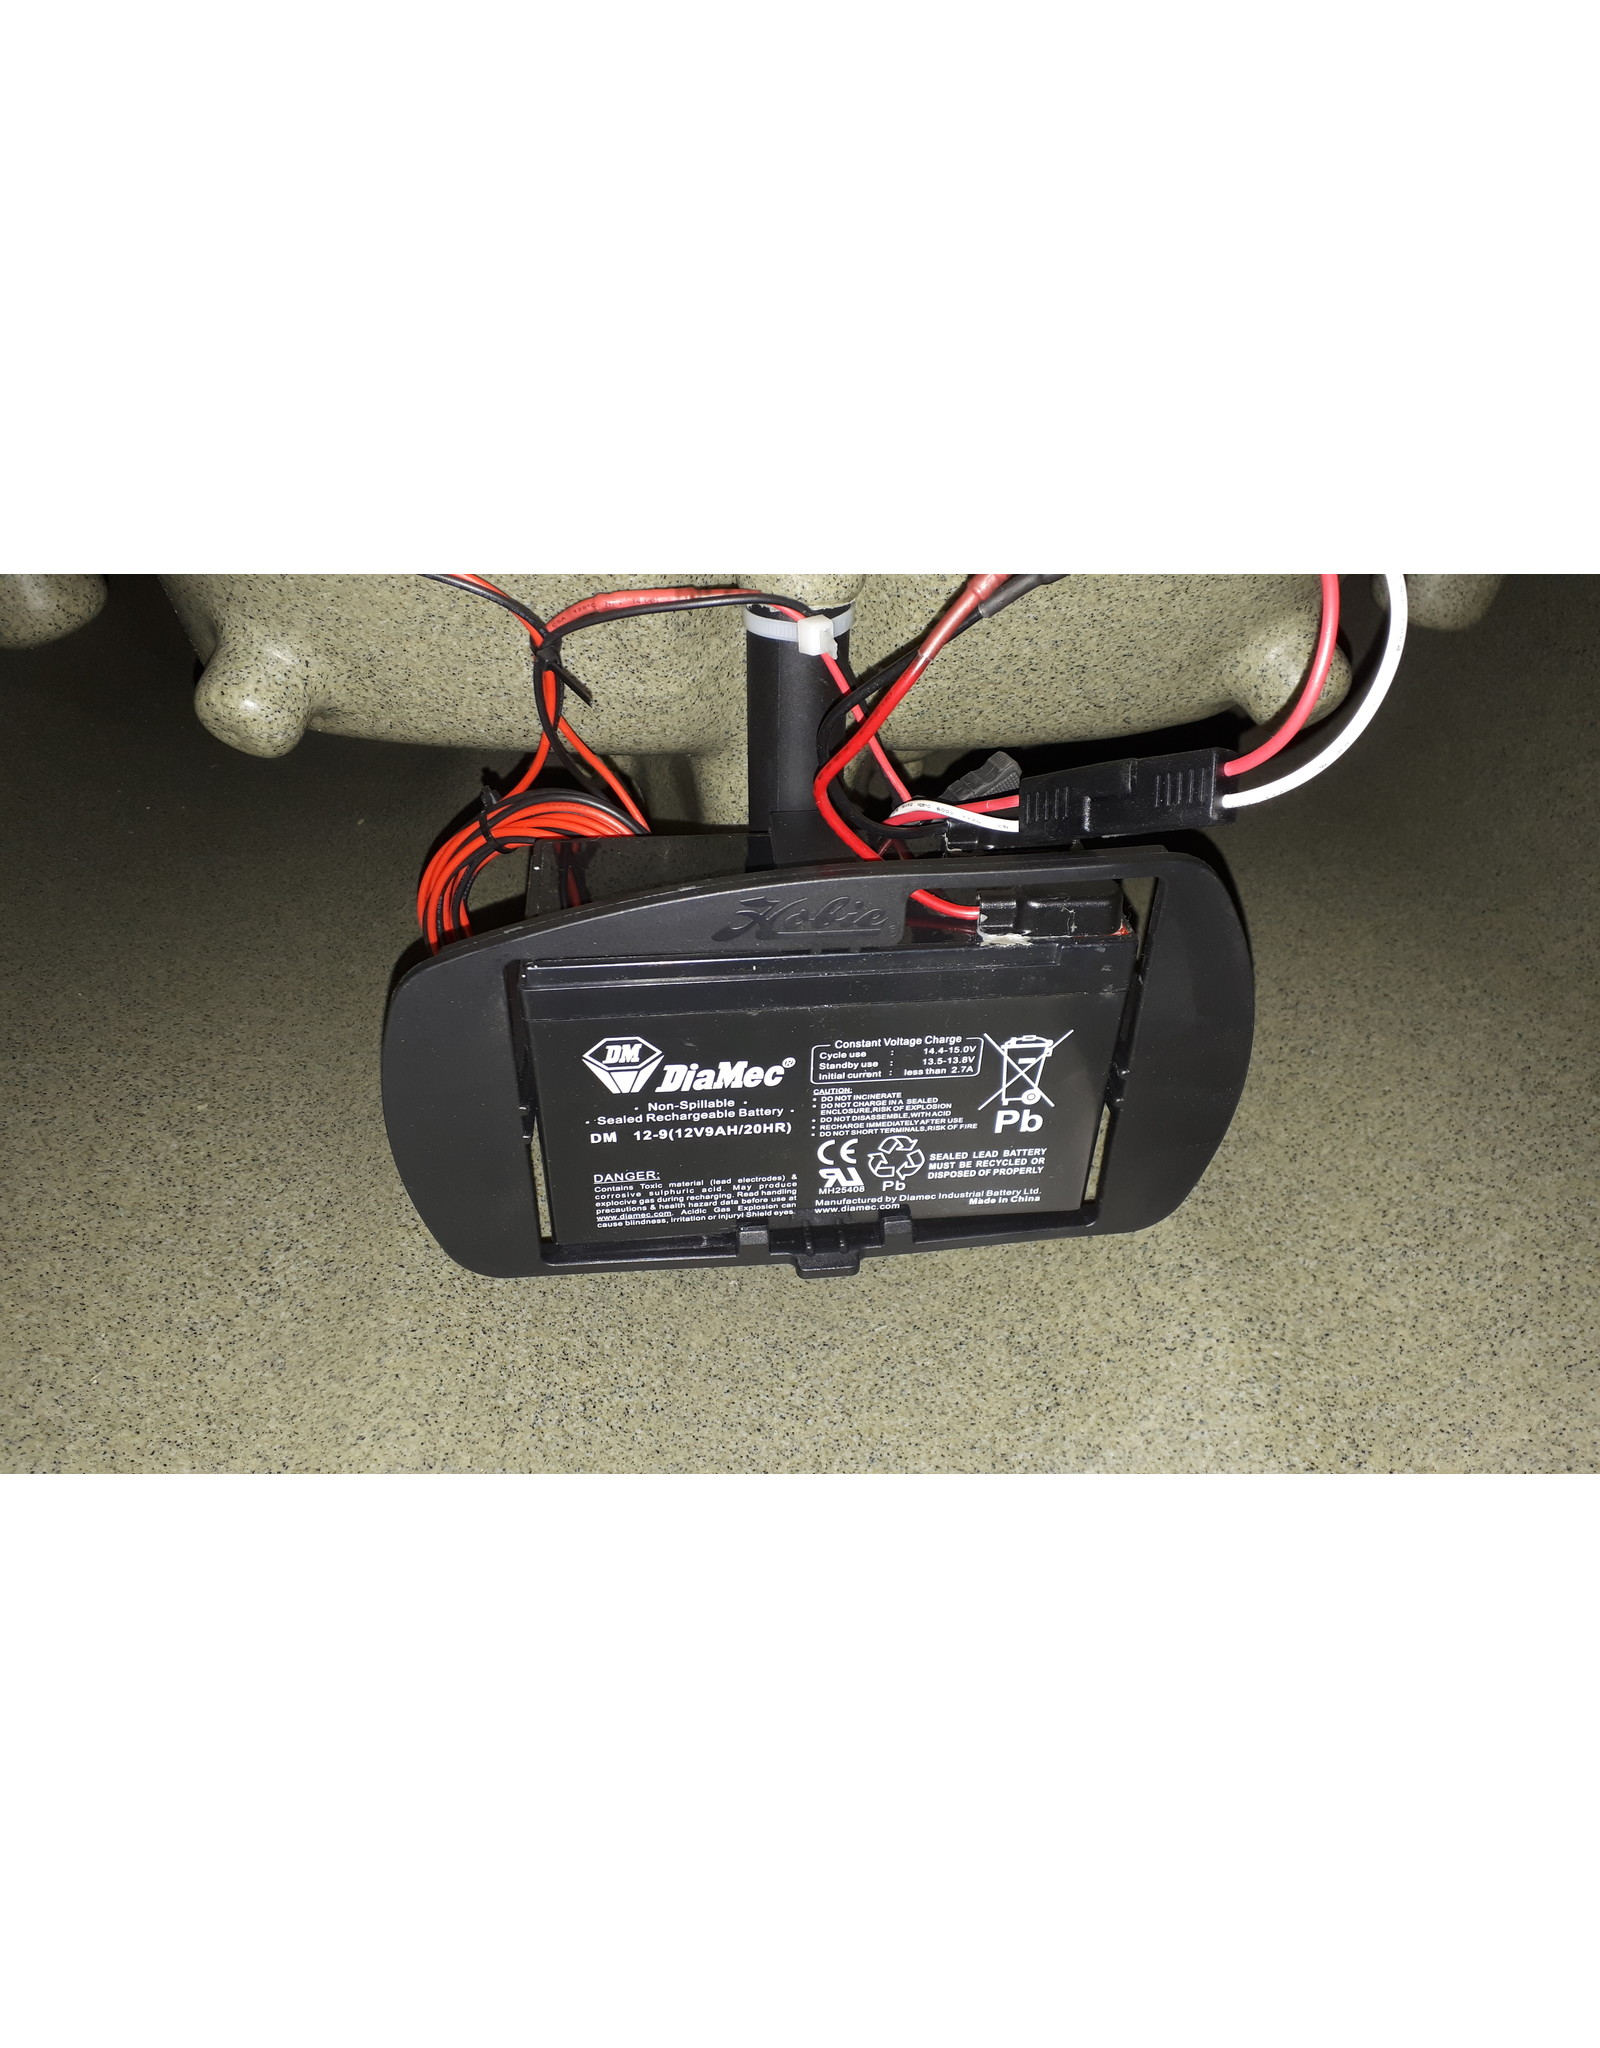 Hobie Hobie Holder, 12v Battery